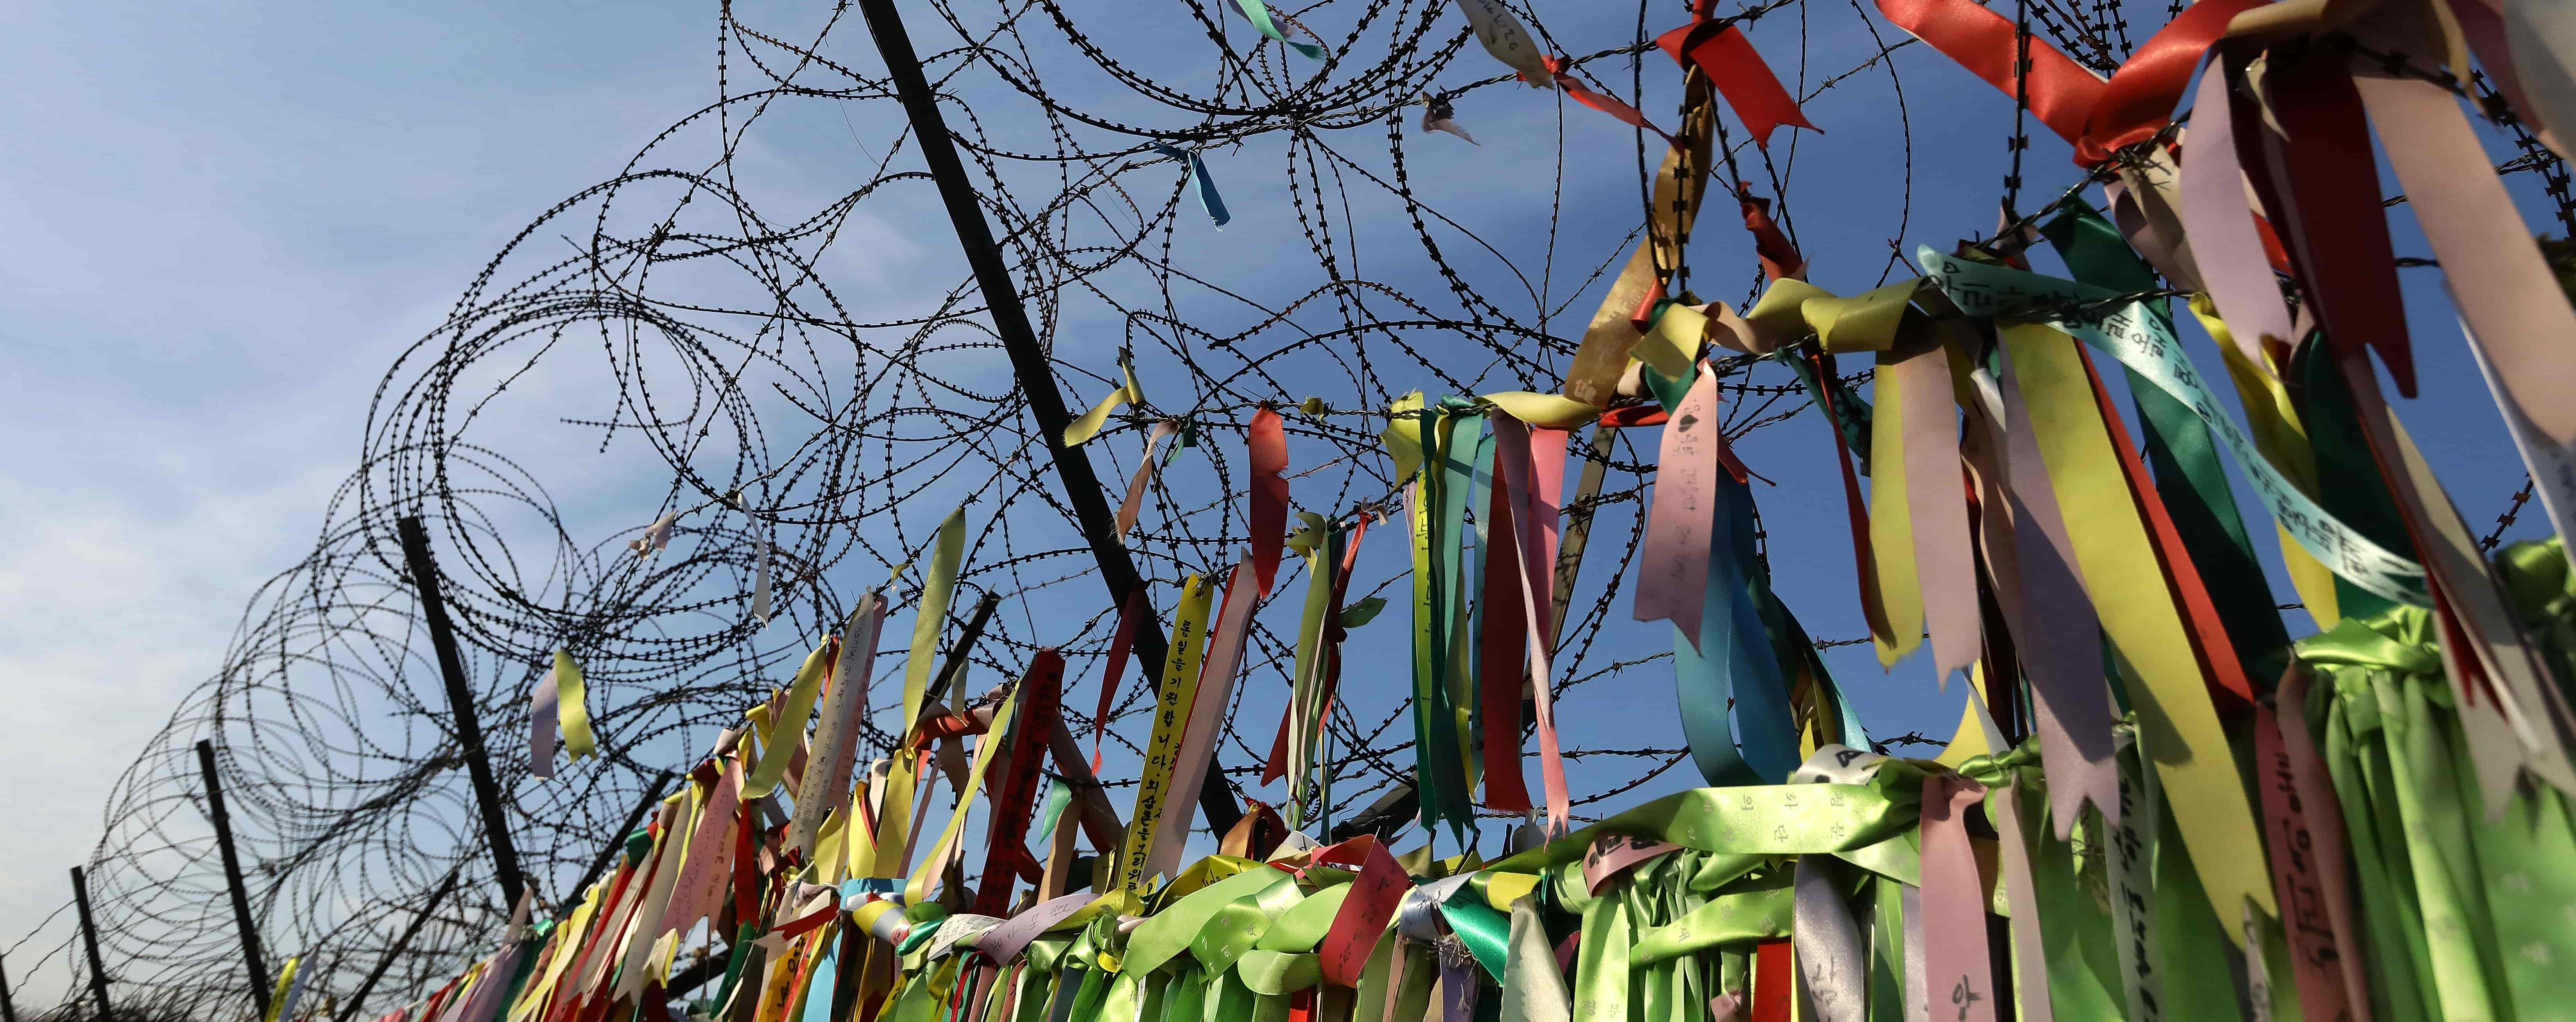 Barbed wire fence near the demilitarised zone separating South and North Korea on 3 January, 2018 (Photo: Chung Sung-Jun/Getty)